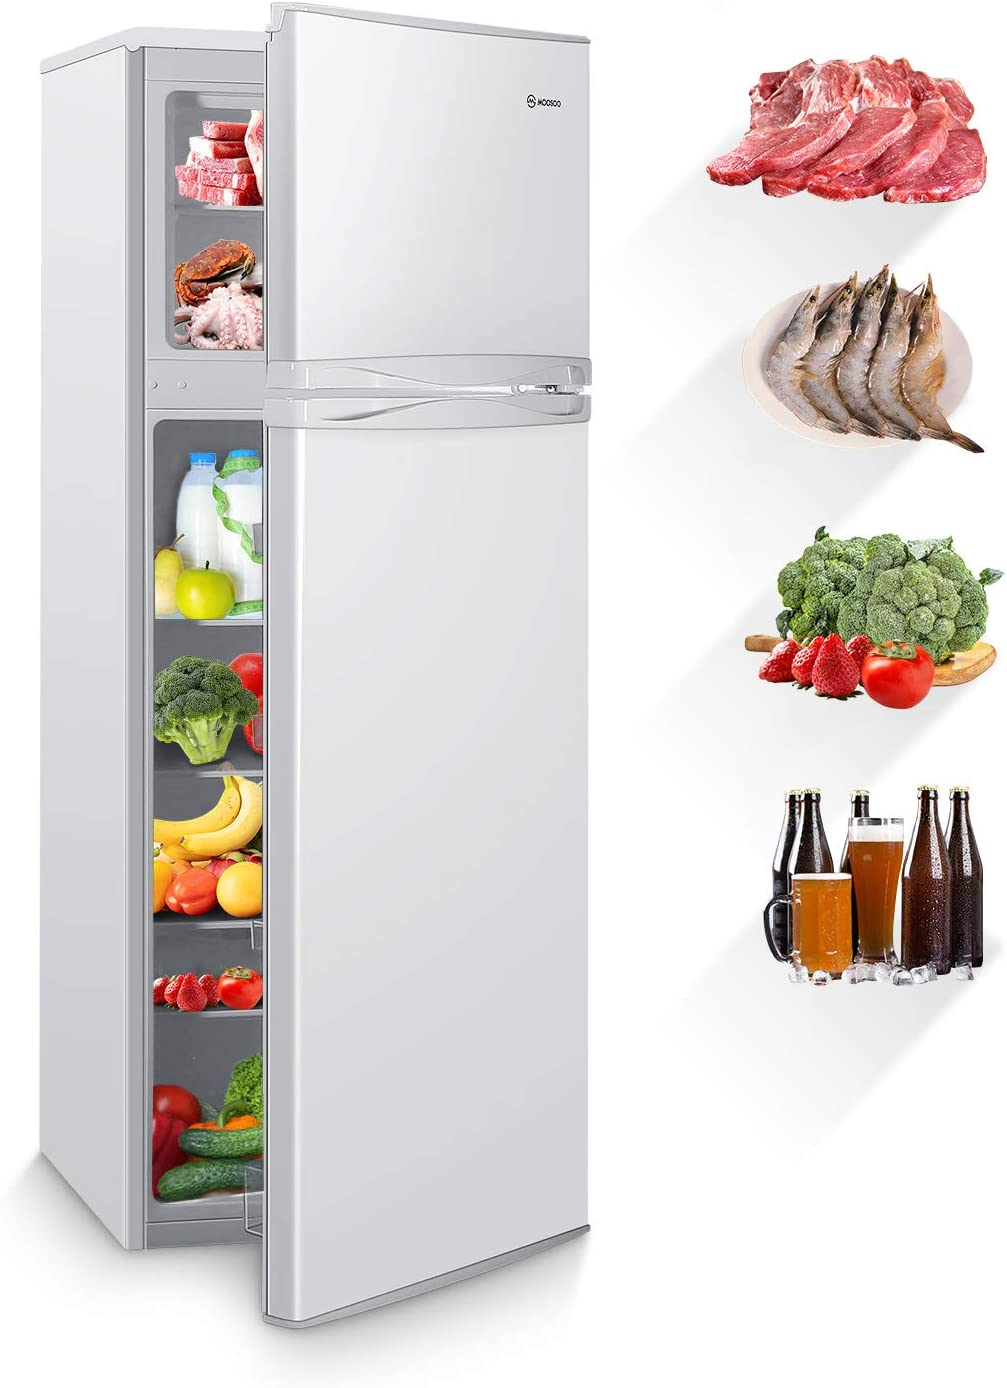 MOOSOO 7.3 Storage Capacity Best Home Refrigerator.